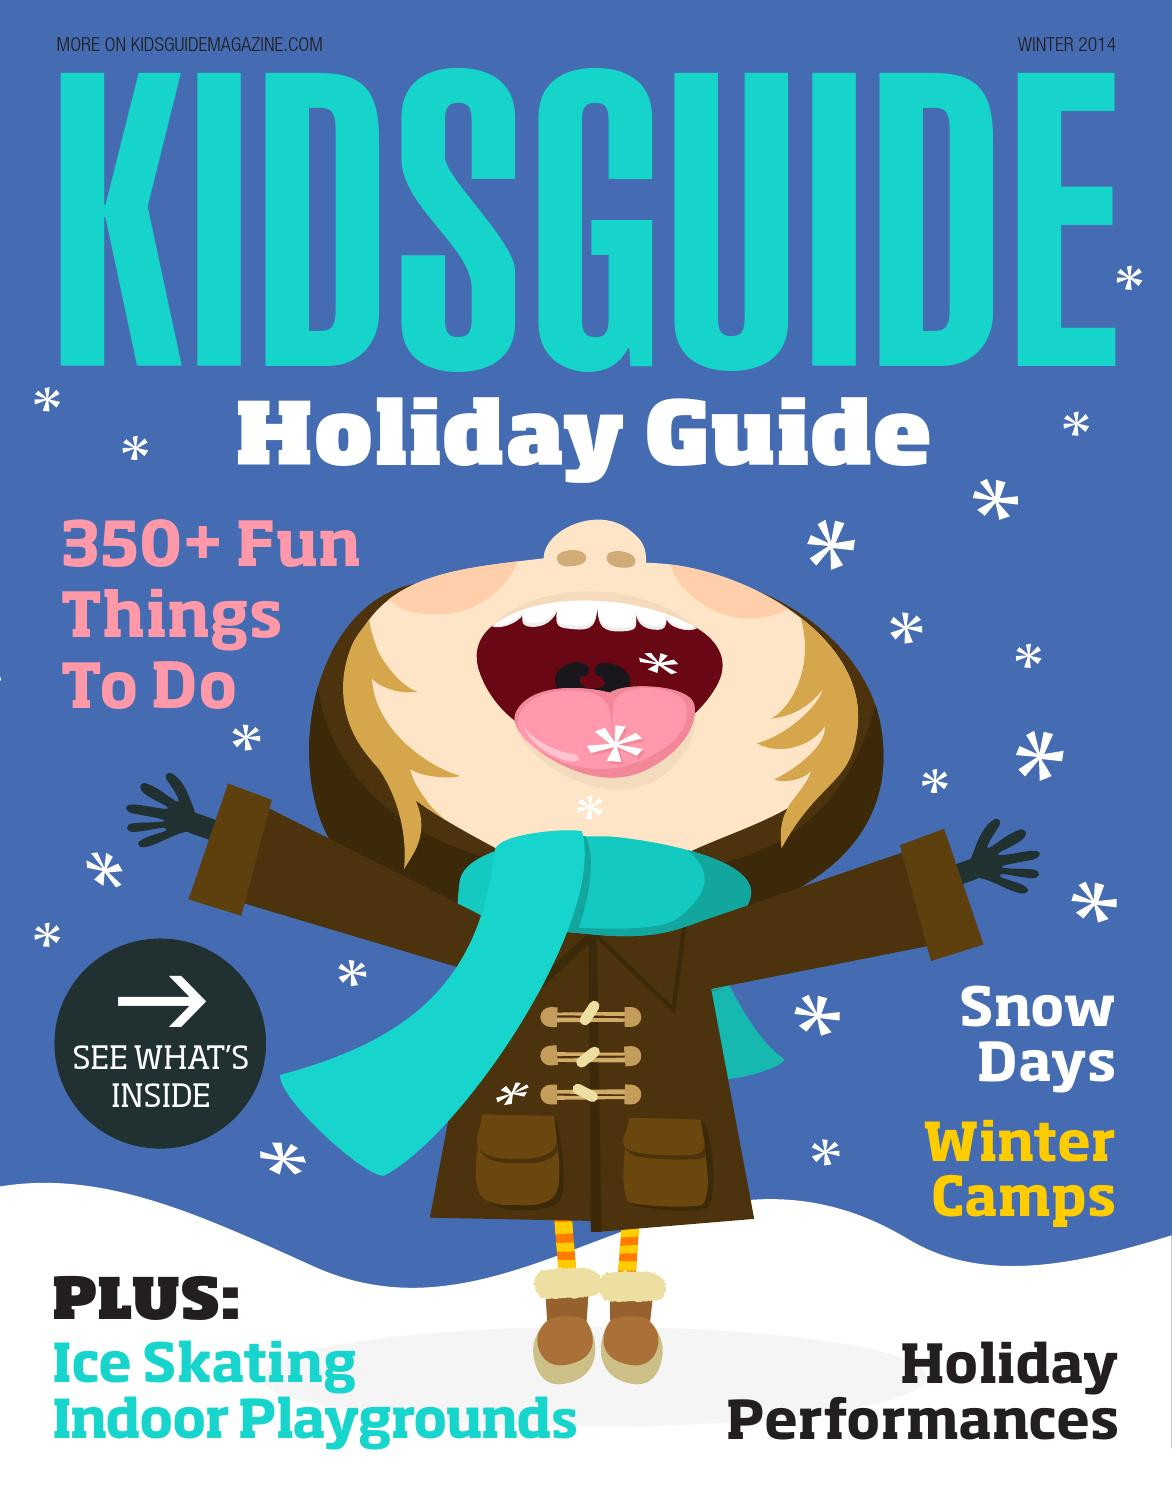 Kidsguide Holiday Guide 2014 By